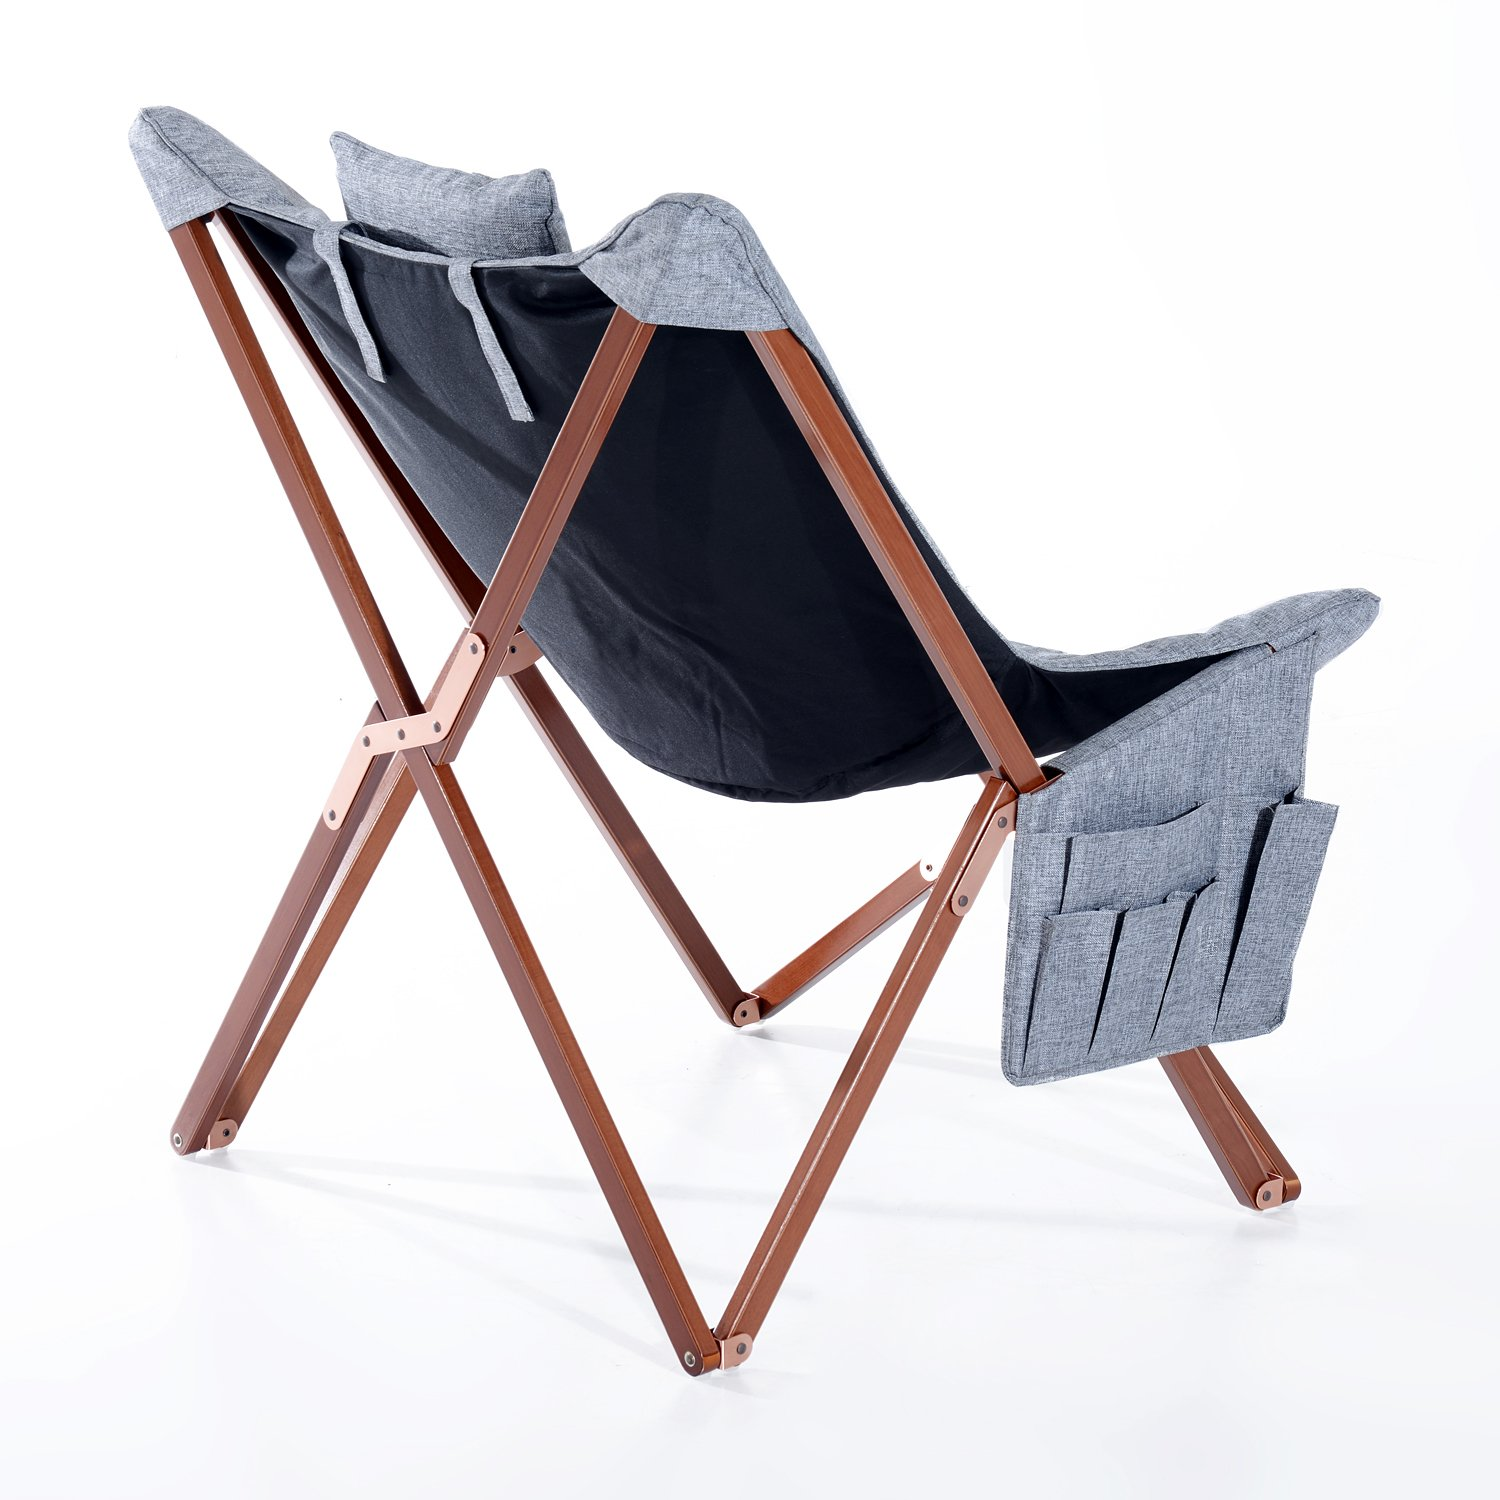 HOM Folding Chair Wooden Frame Picnic Hiking Fishing Camping